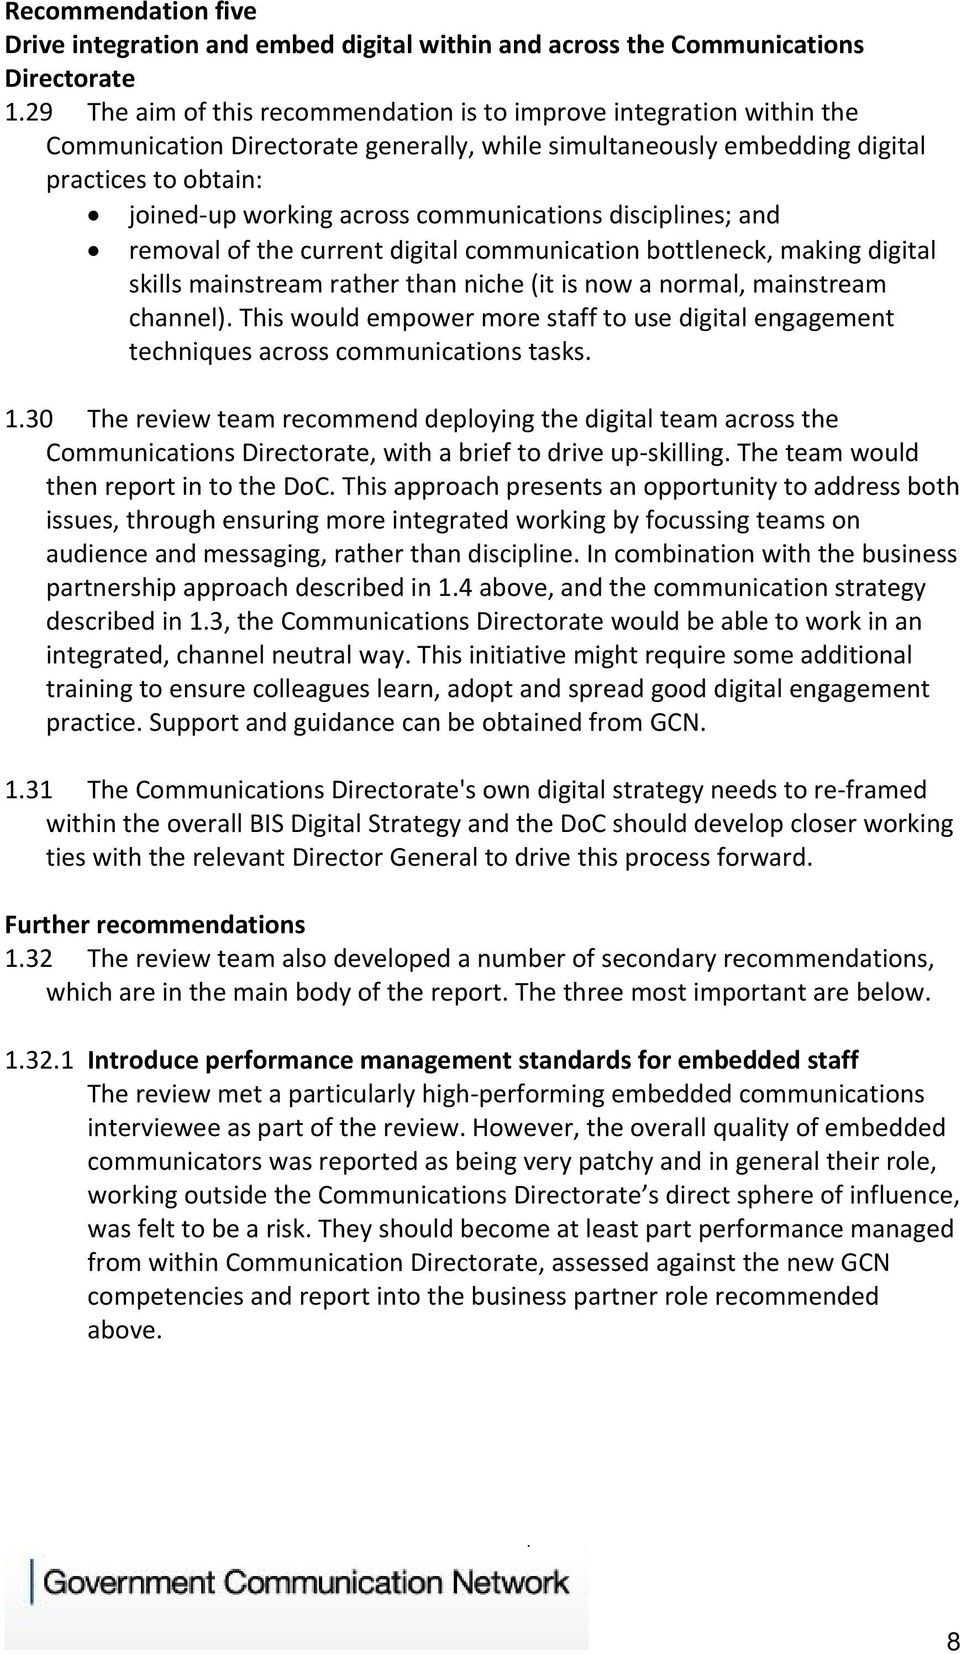 communications disciplines; and removal of the current digital communication bottleneck, making digital skills mainstream rather than niche (it is now a normal, mainstream channel).